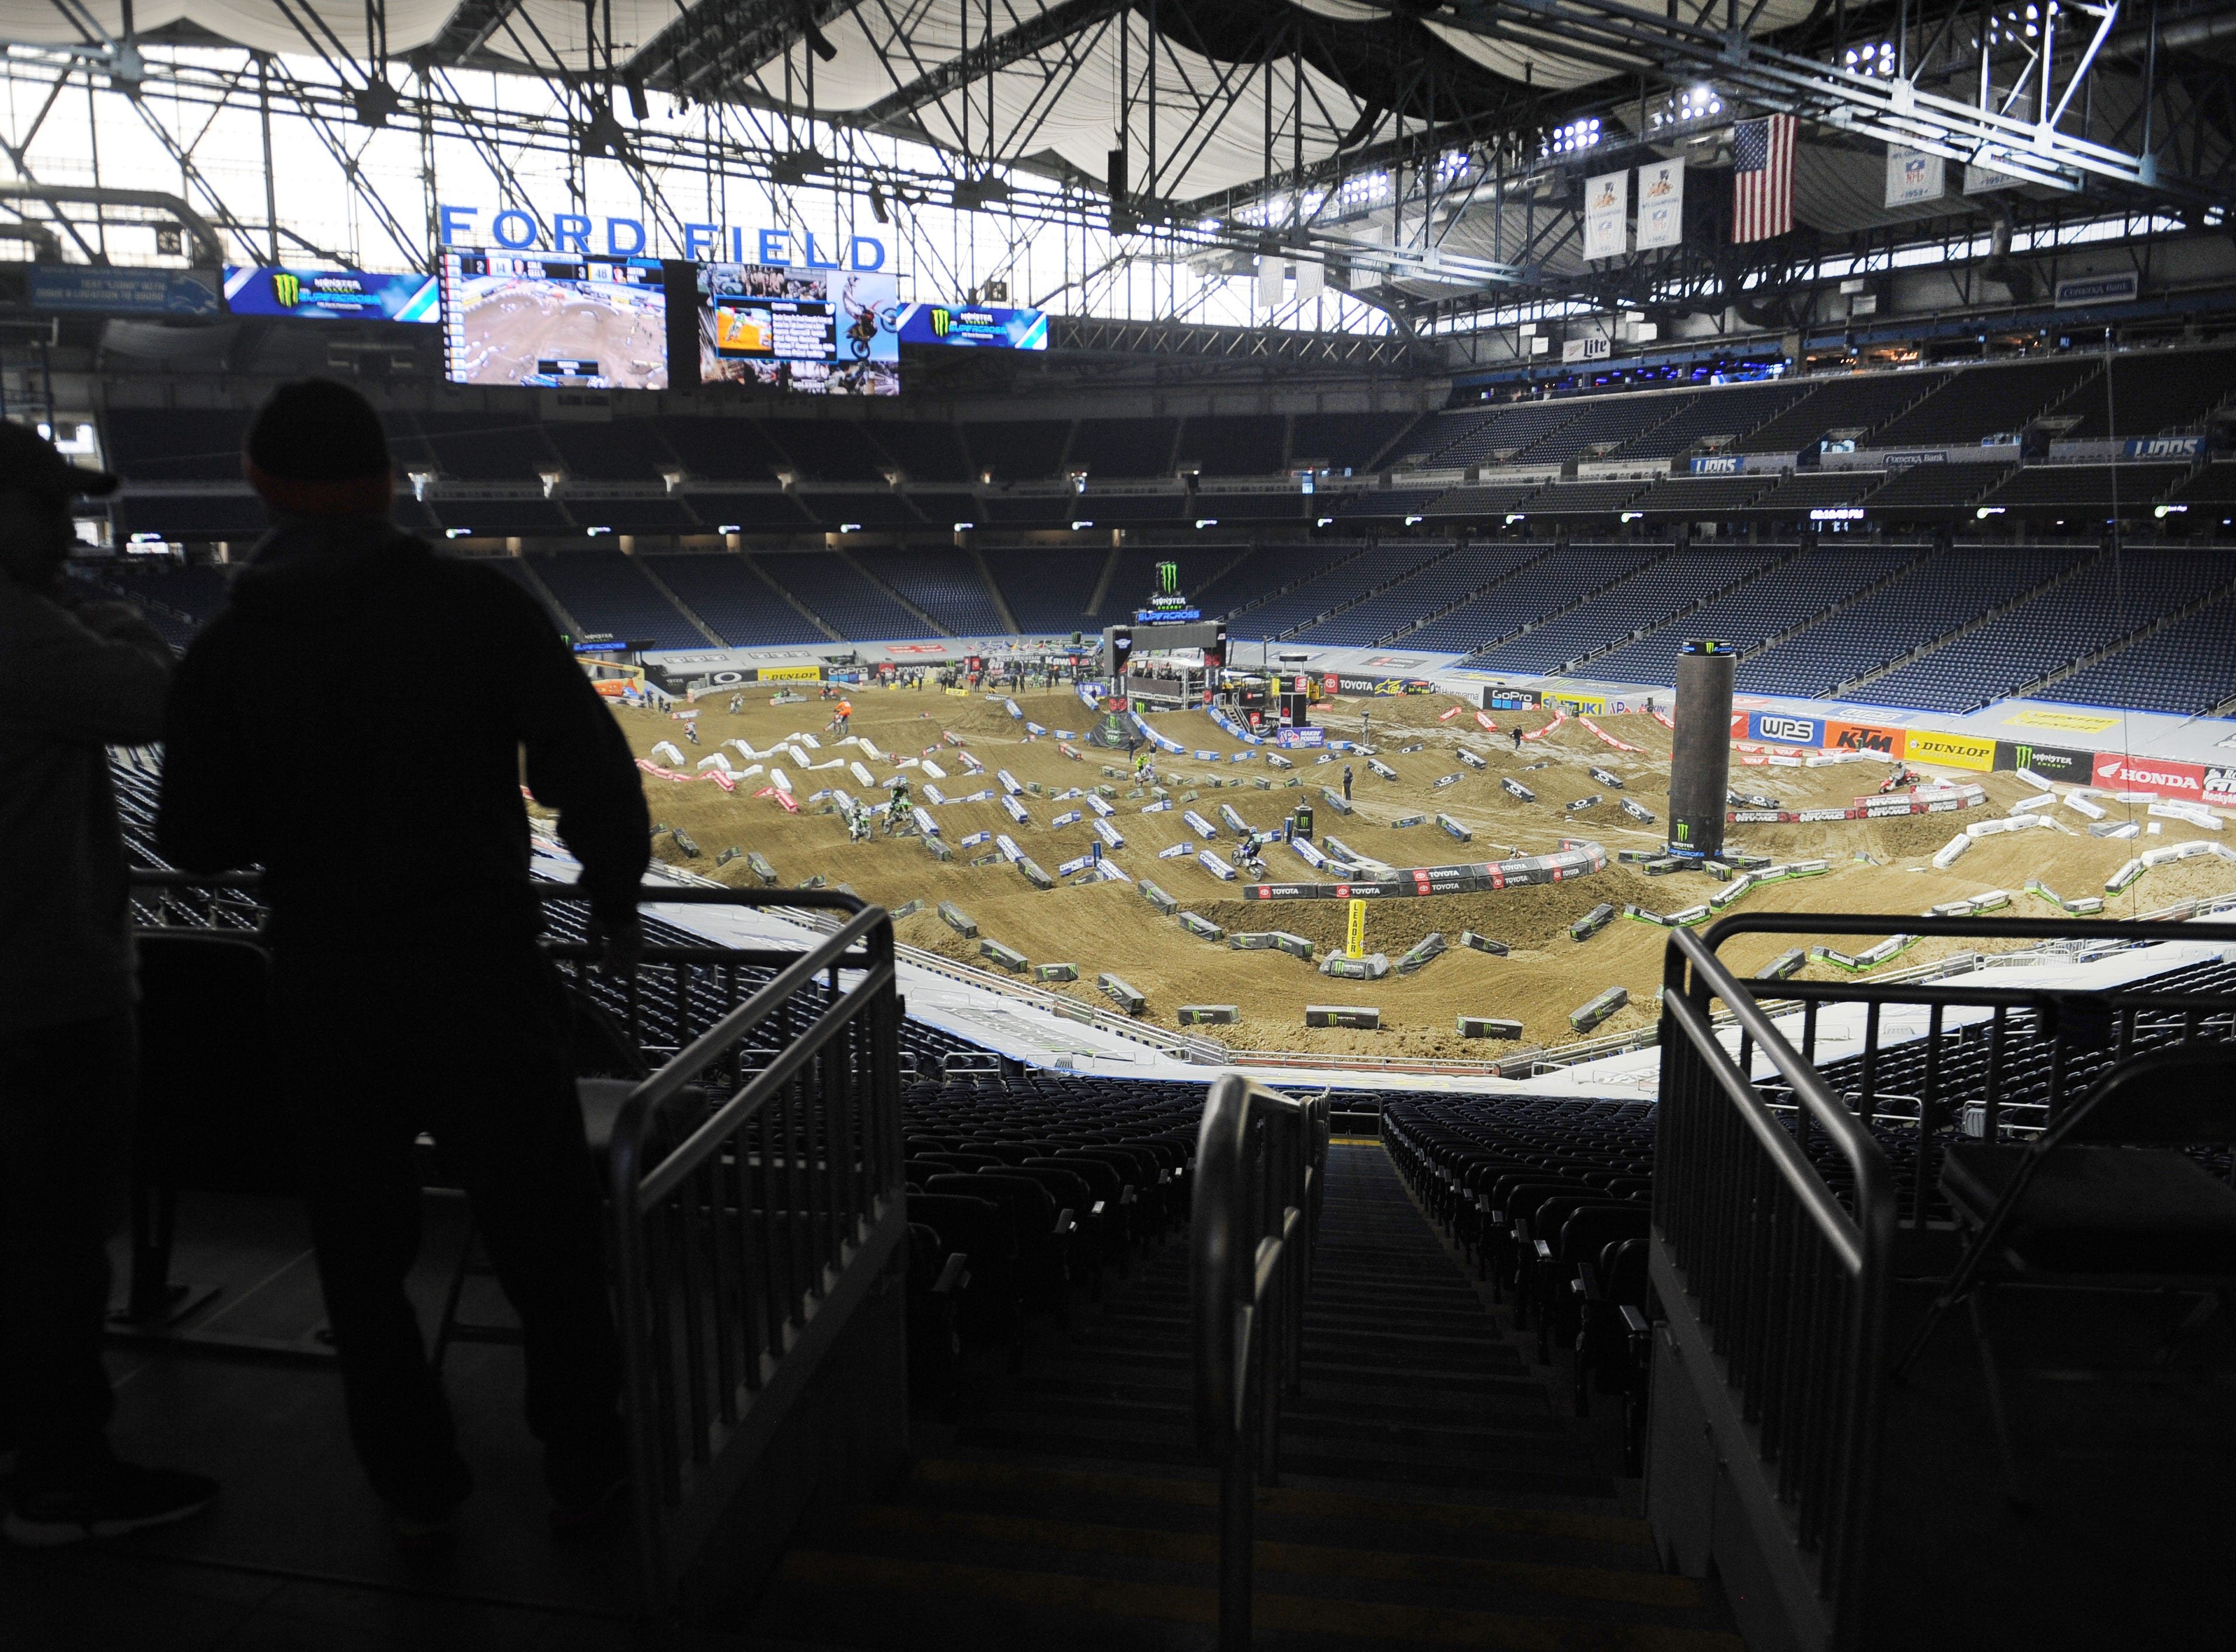 Supercross riders race down tons of dirt and ramps for the 2019 Monster Energy Supercross at Ford Field in Detroit on Friday, February 22, 2019.